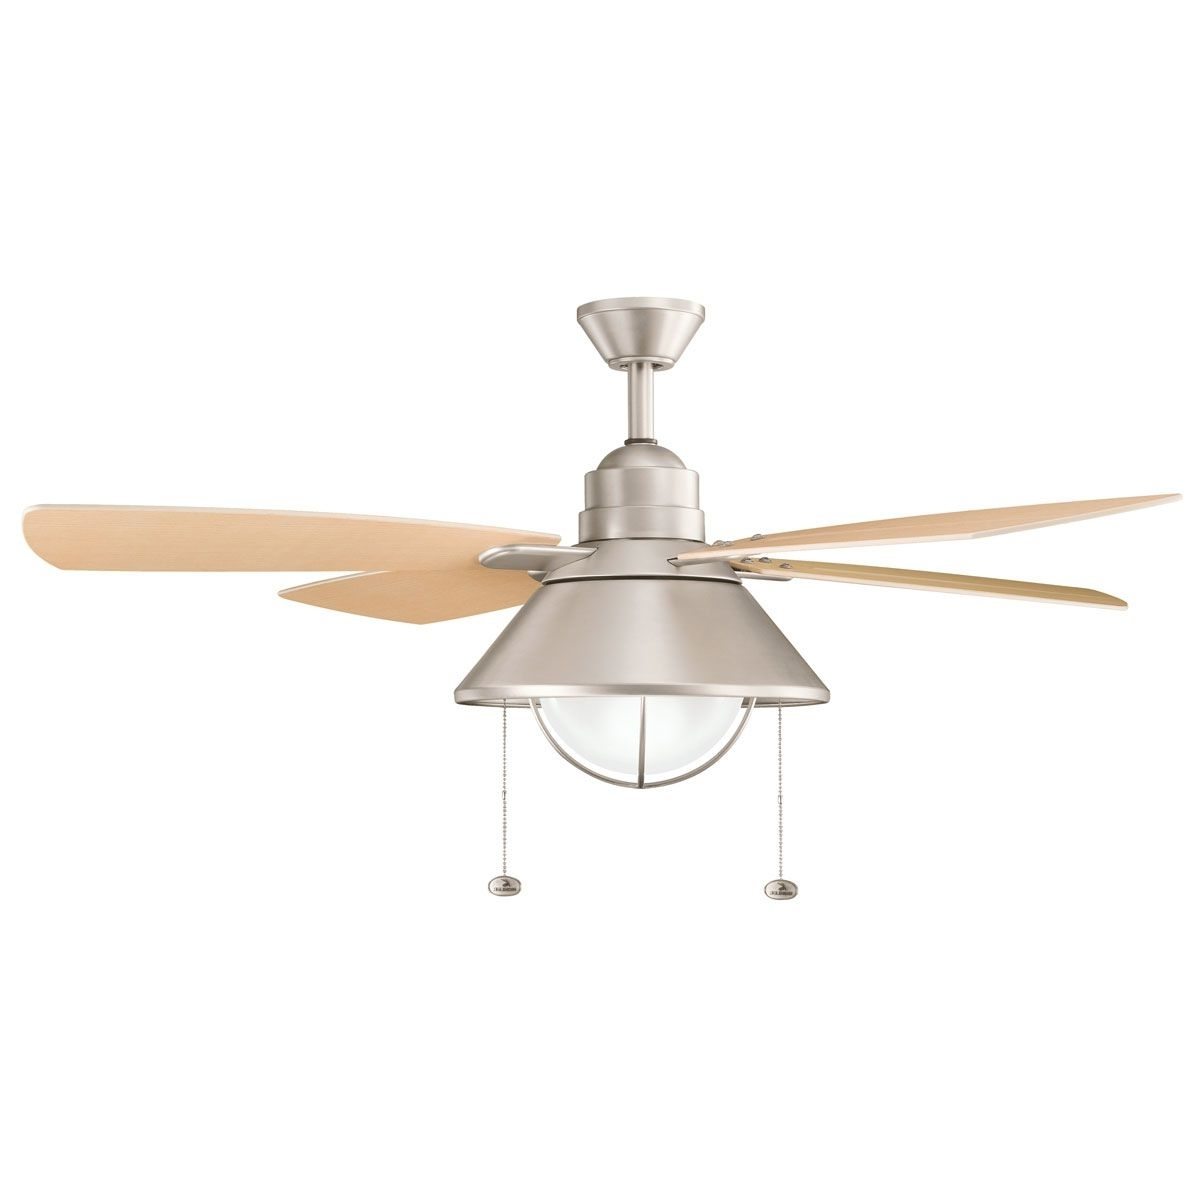 Ideas For The Pertaining To Outdoor Ceiling Fans With Light Kit (View 3 of 20)